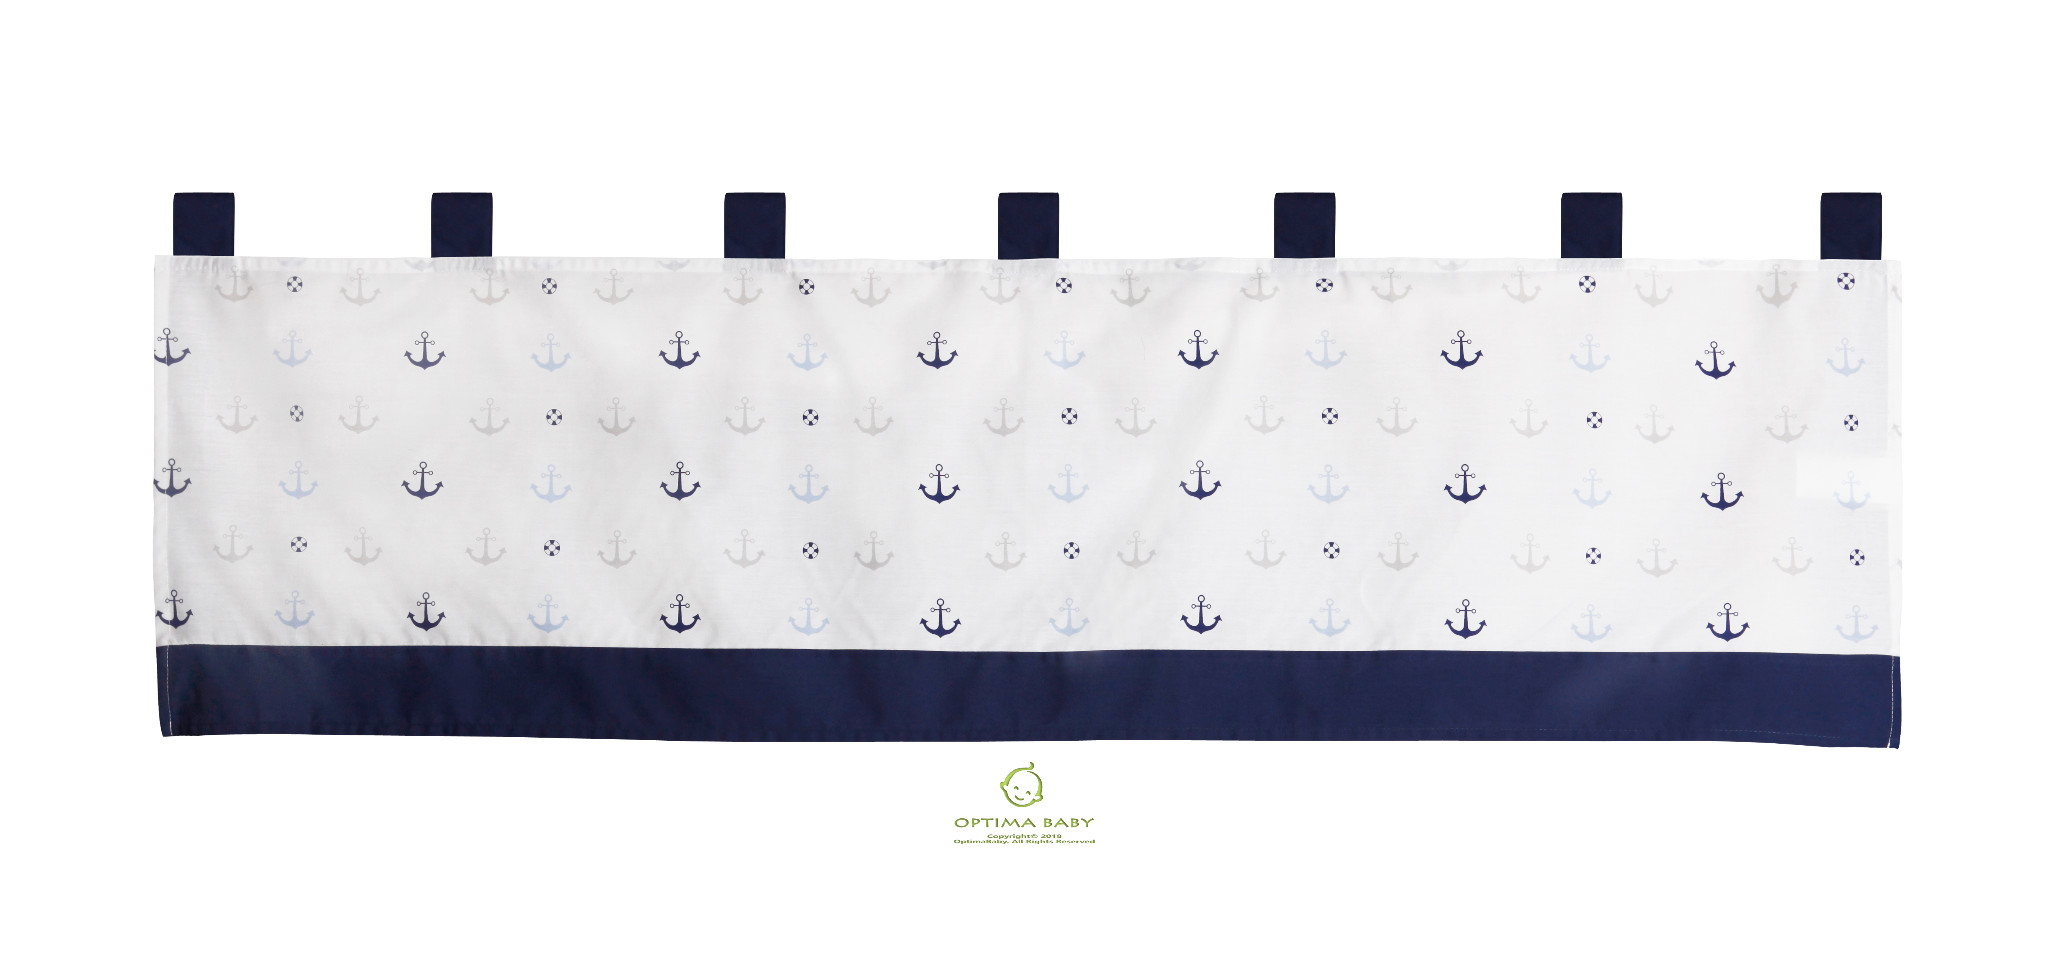 6-Piece Nautical Explorer Sail Baby Boy Nursery Crib Bedding Sets By OptimaBaby